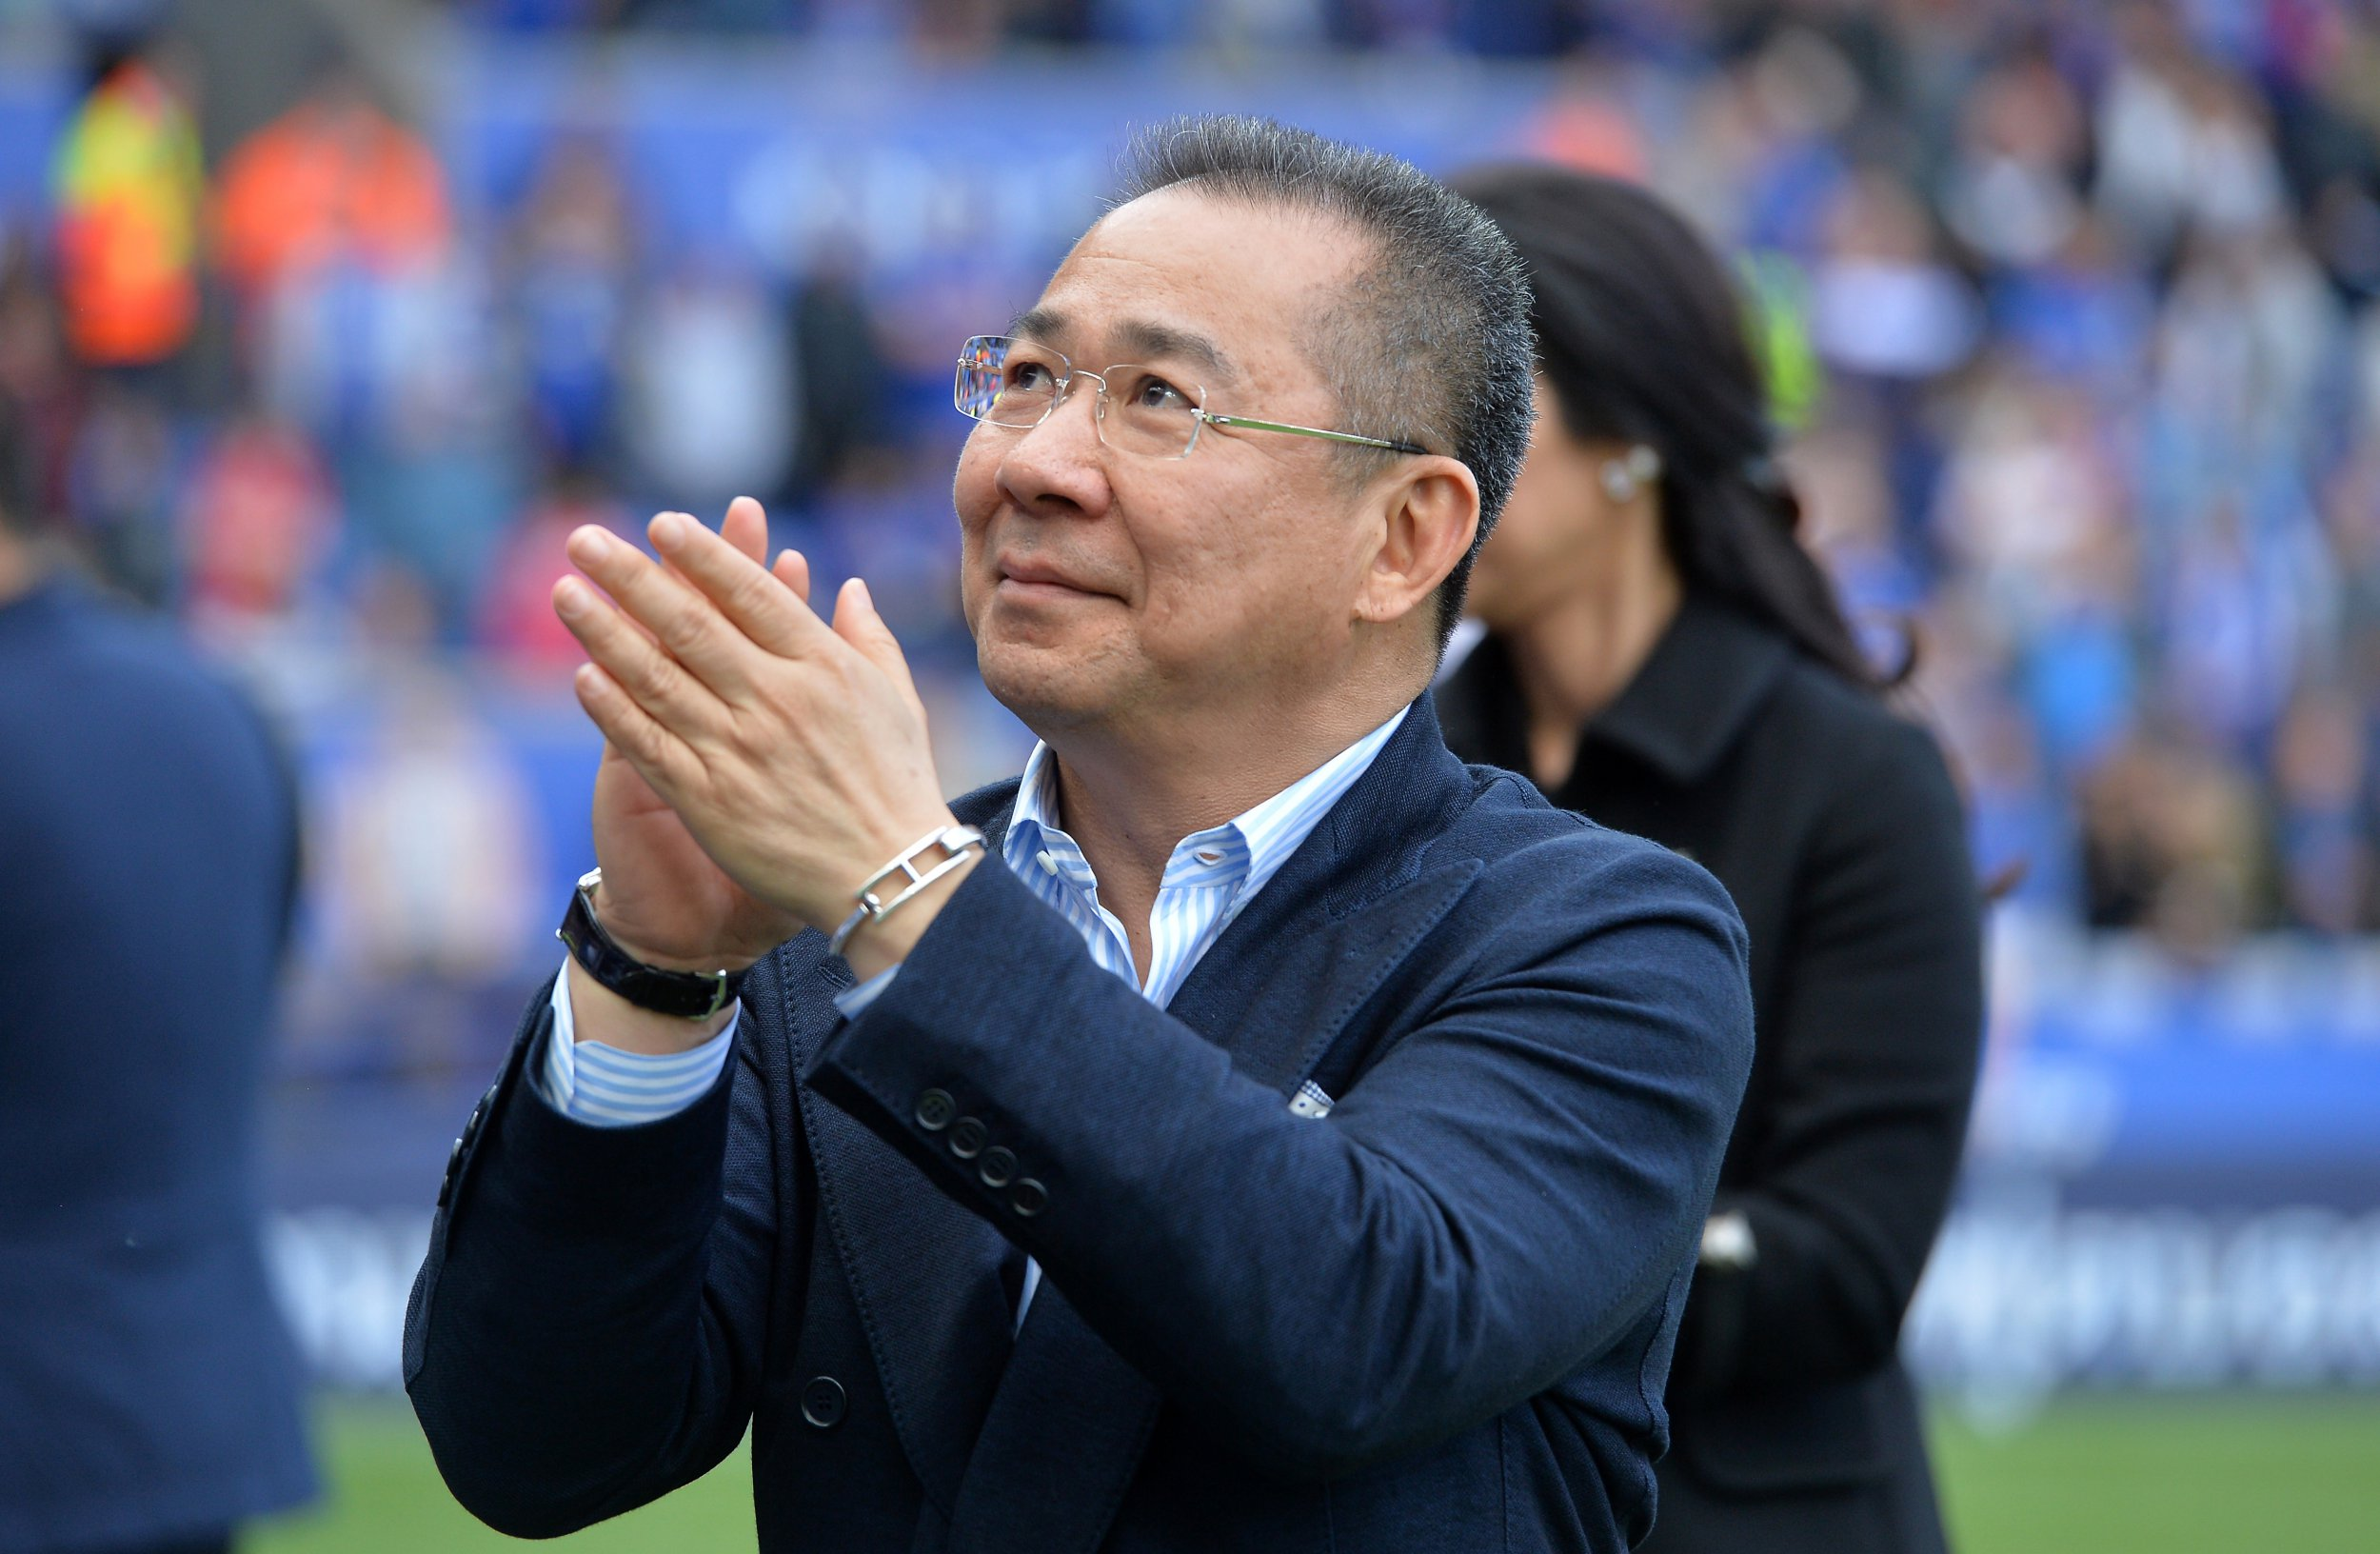 LEICESTER, ENGLAND - MAY 21: Chairman Vichai Srivaddhanaprabha of Leicester City applauds the fans during a lap of the pitch after the Premier League match between Leicester City and Bournemouth at King Power Stadium on May 21 , 2017 in Leicester, United Kingdom. (Photo by Plumb Images/Leicester City FC via Getty Images)